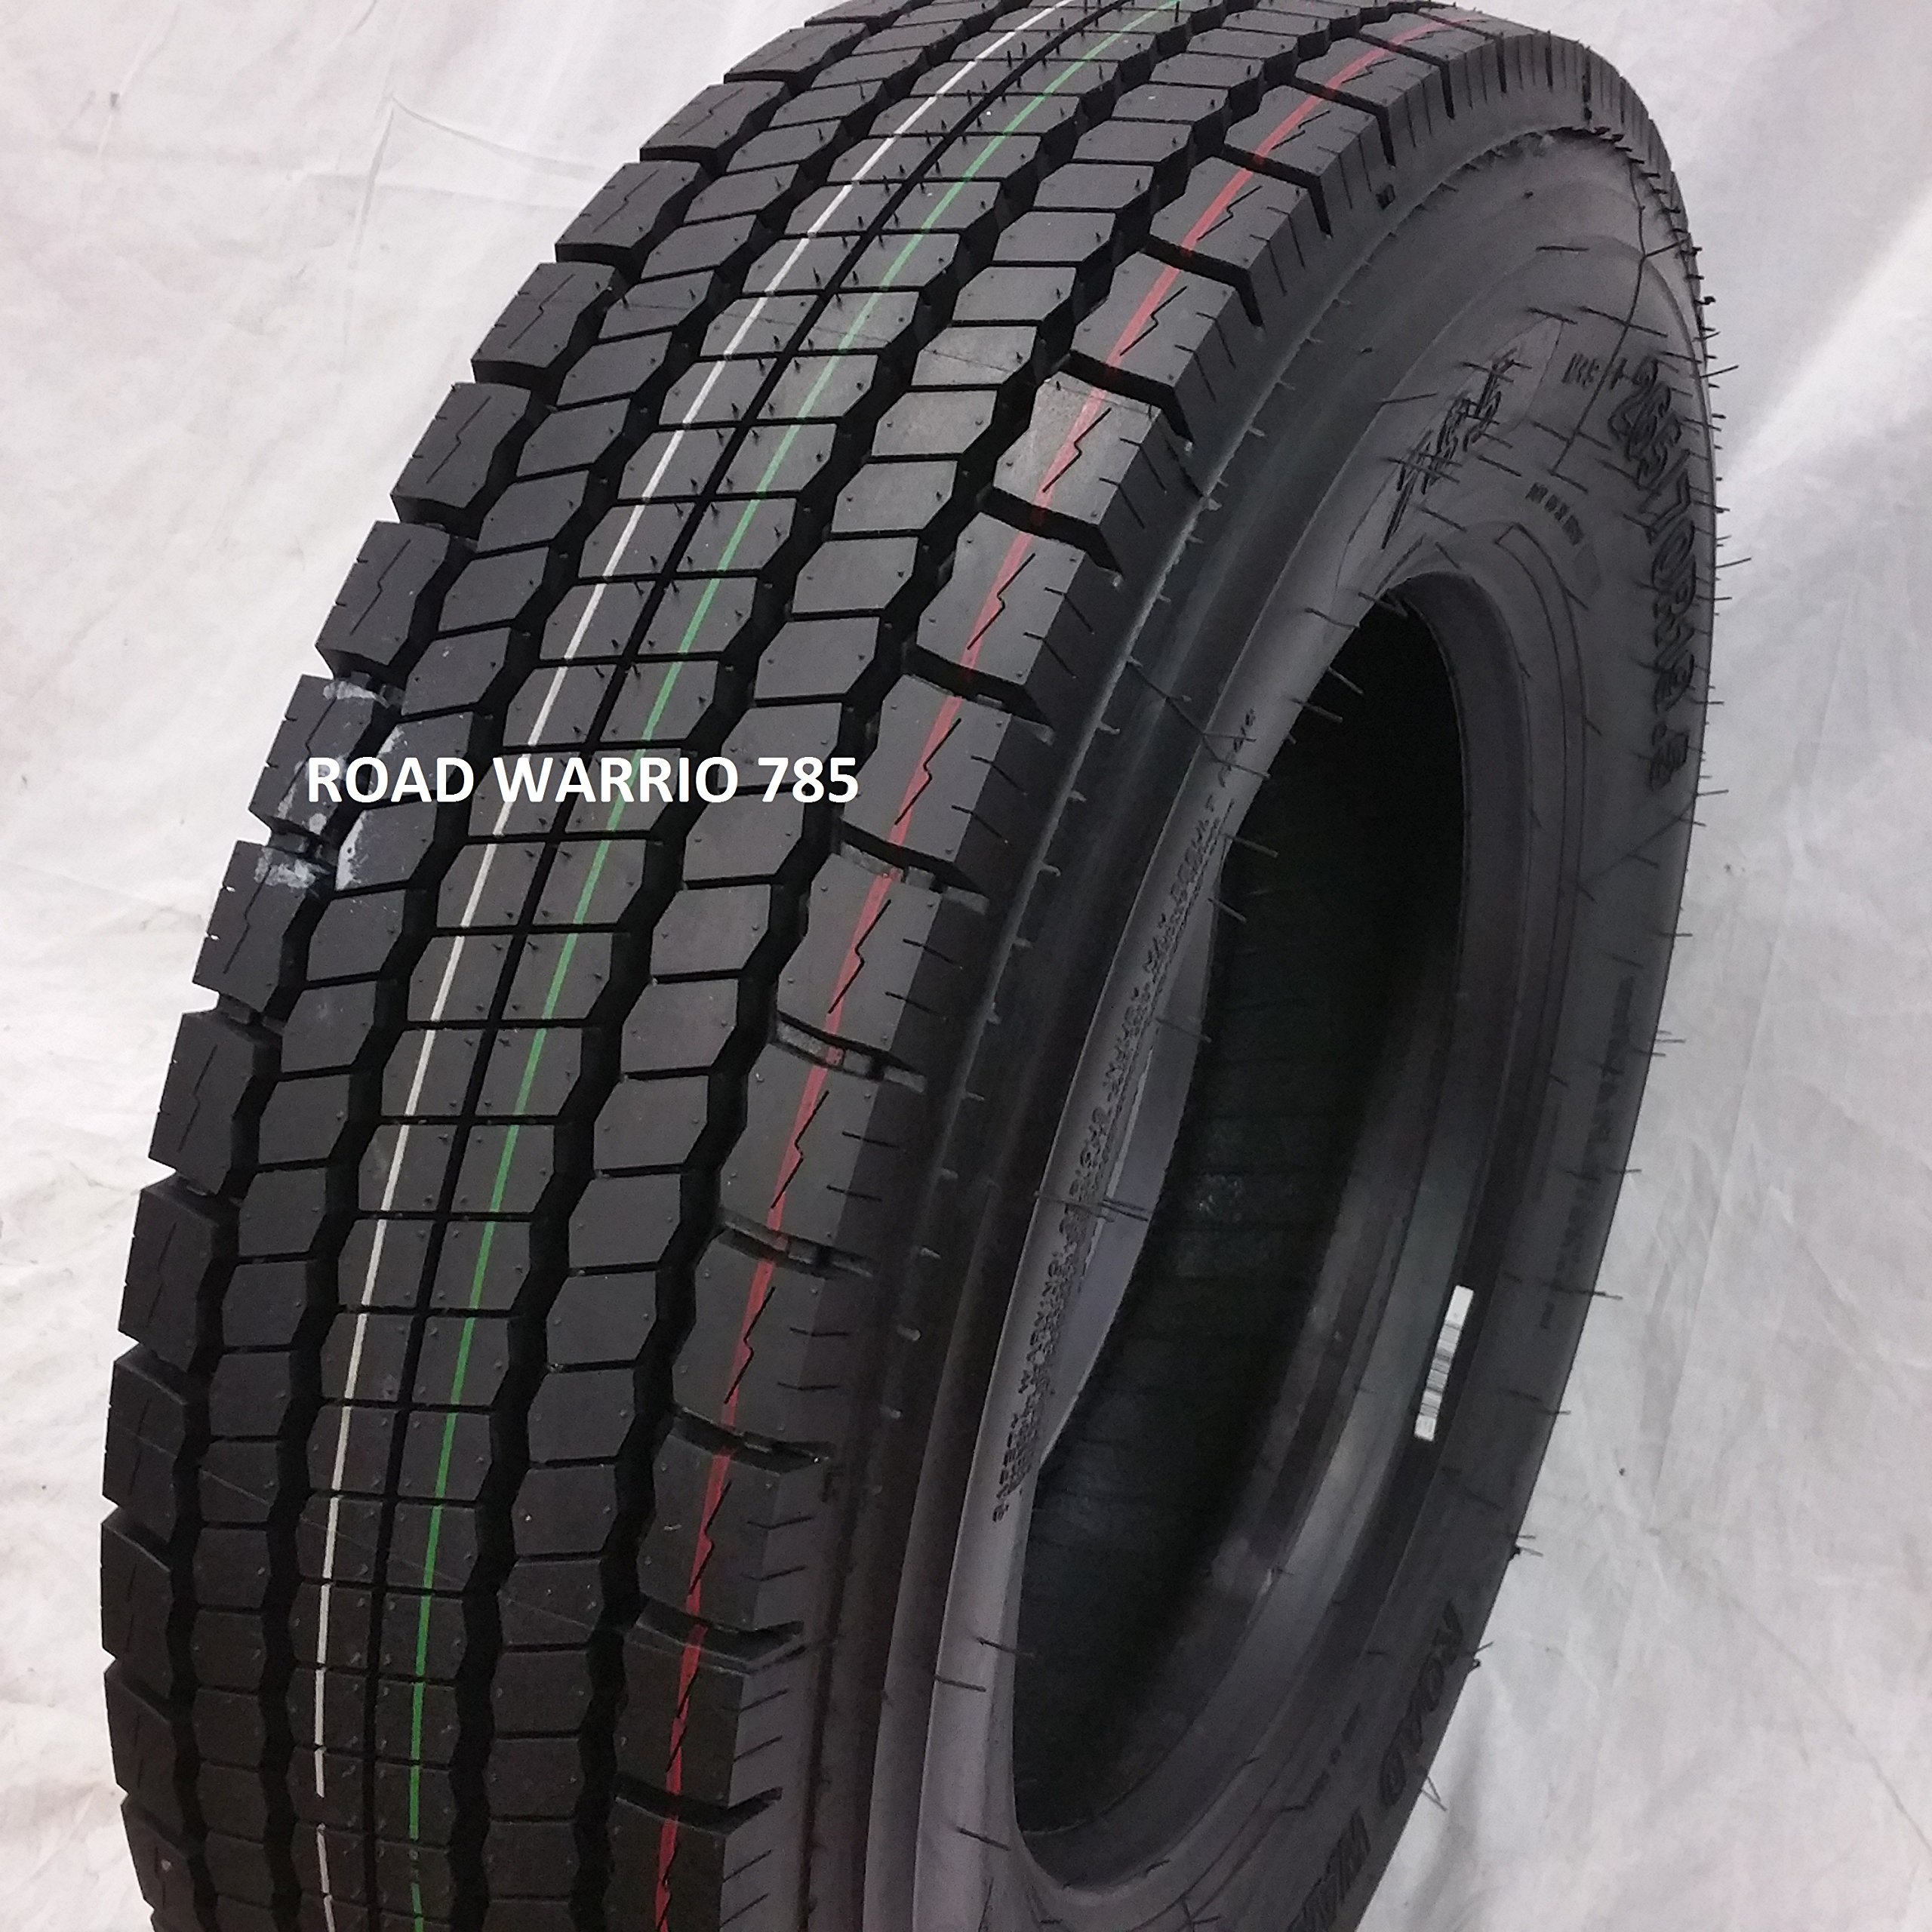 (1-TIRE) 215/75R17.5 ROAD WARRIOR 785 14 PLY DRIVE ALL POSITIONS Premium Heavy Duty TRUCK 21575175 by ROAD WARRIOR